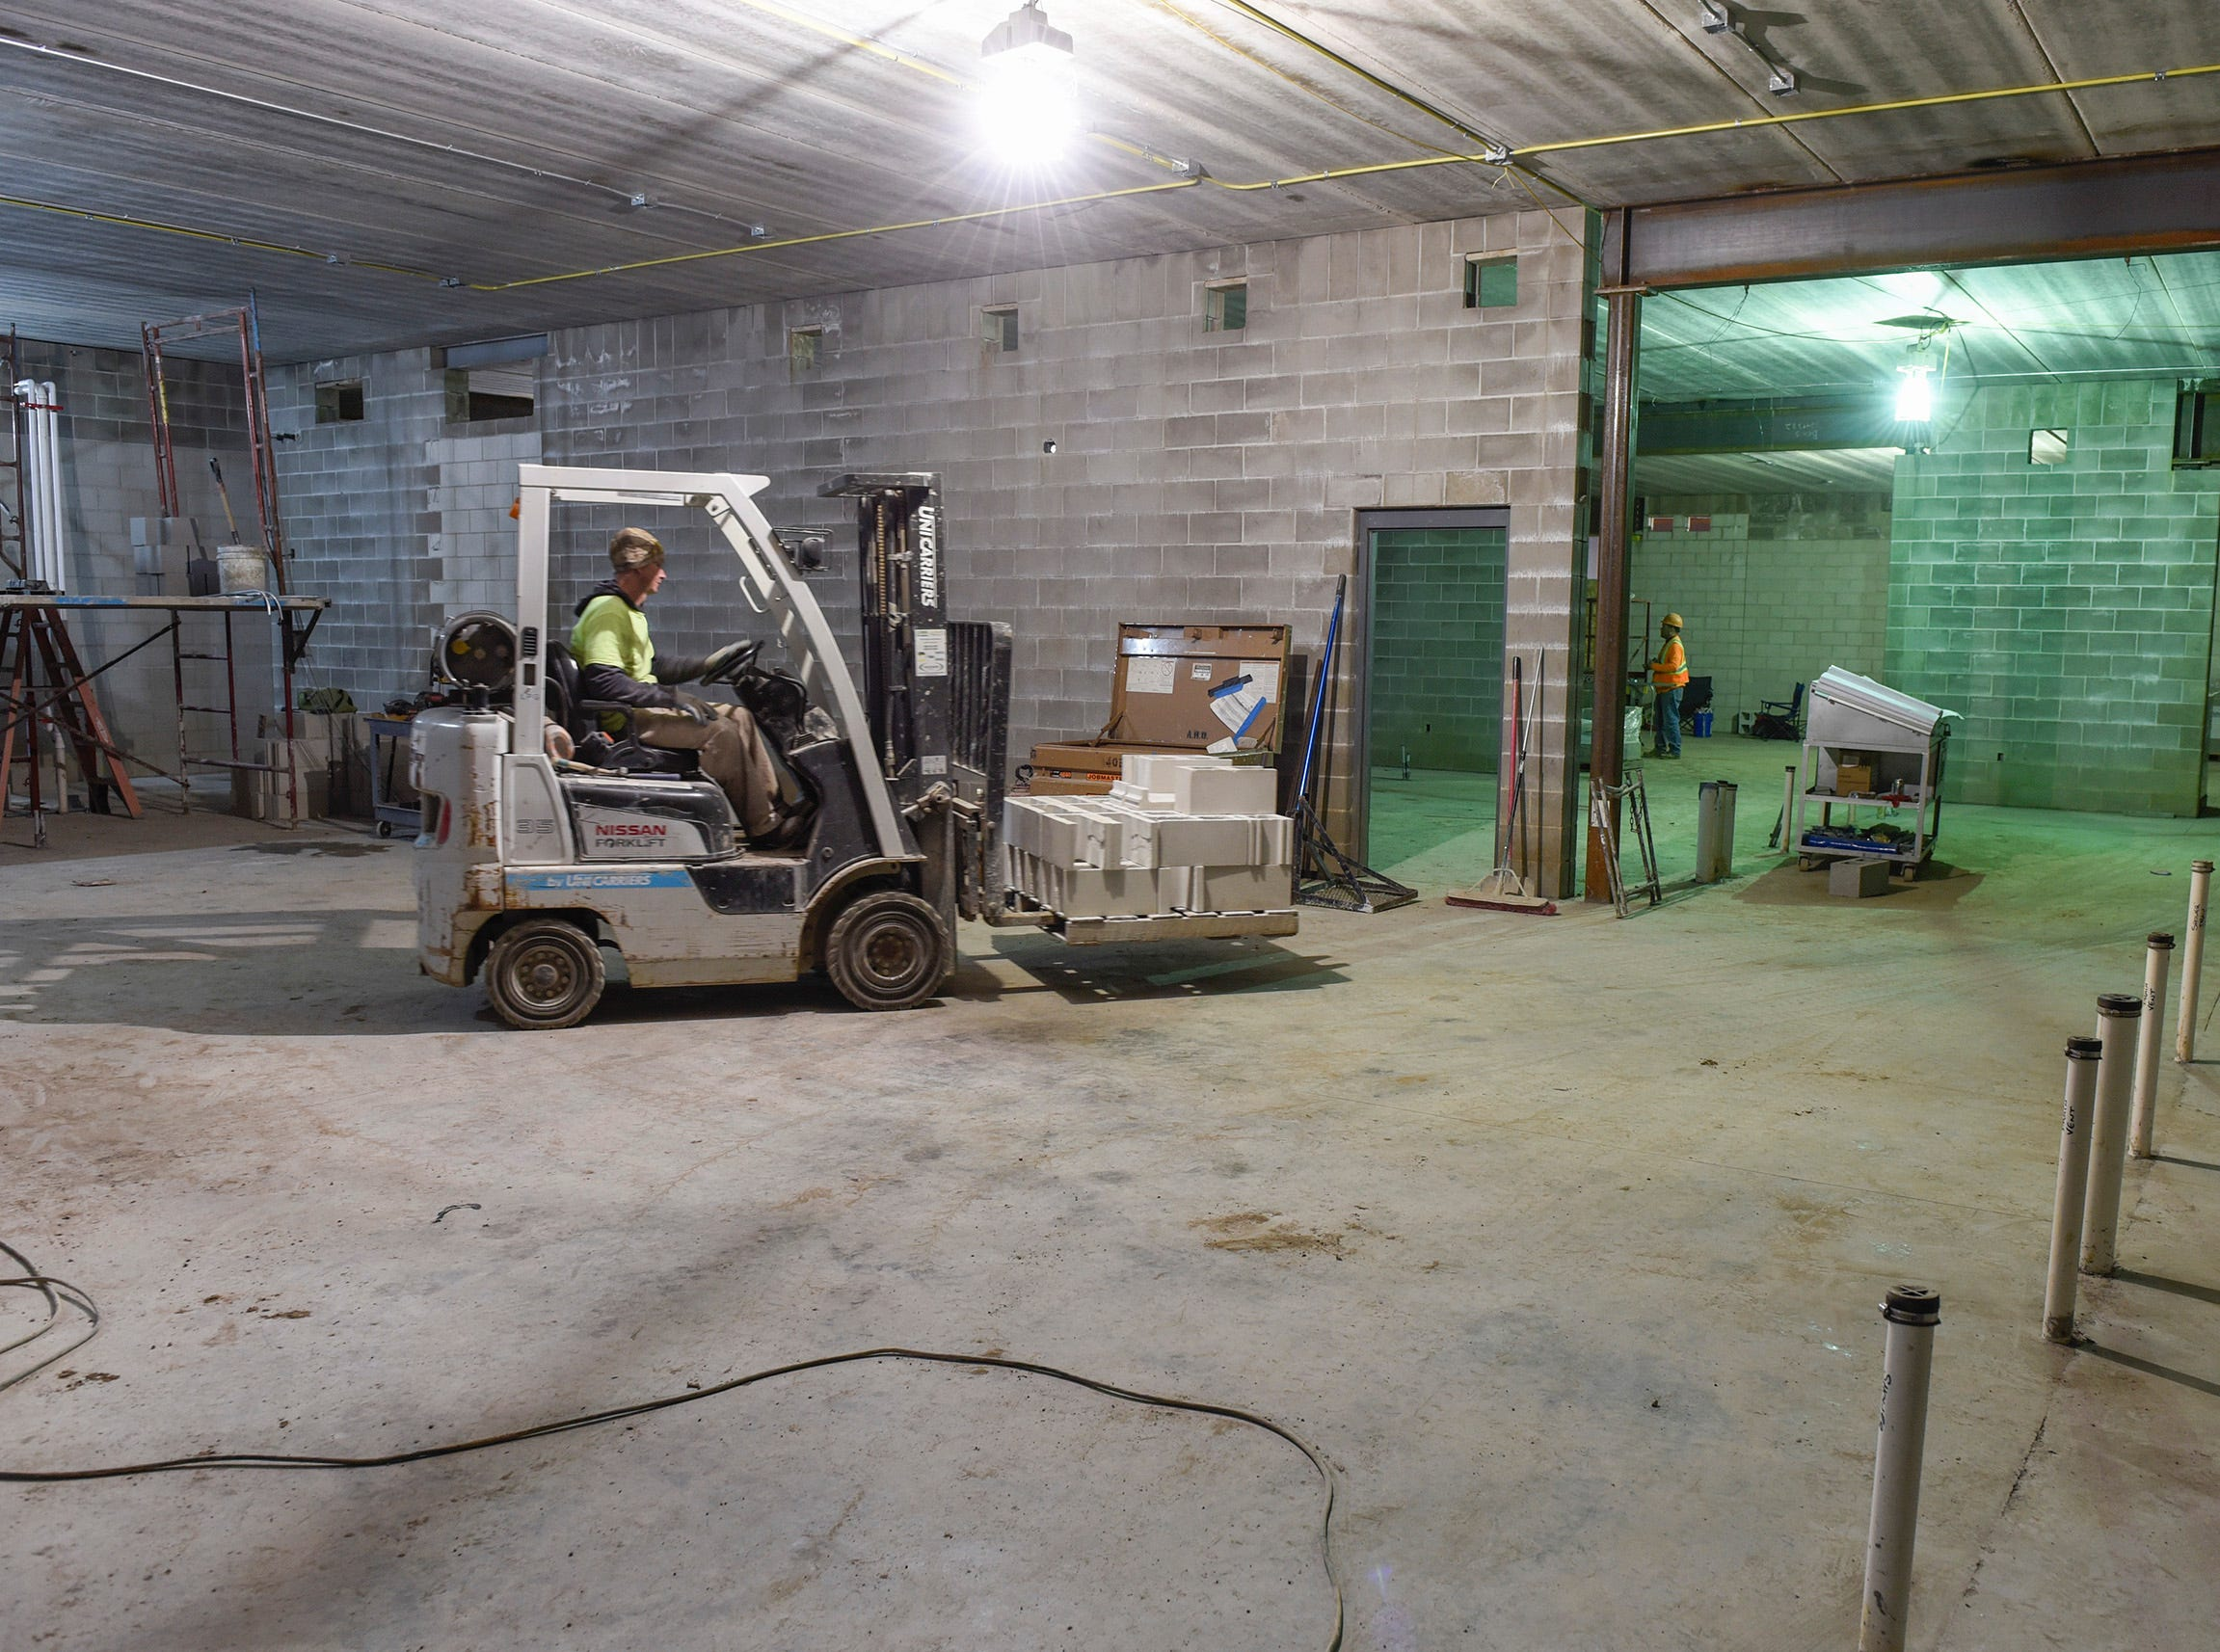 Contractors work on the locker room area Thursday, Nov. 1, at the new Tech High School.